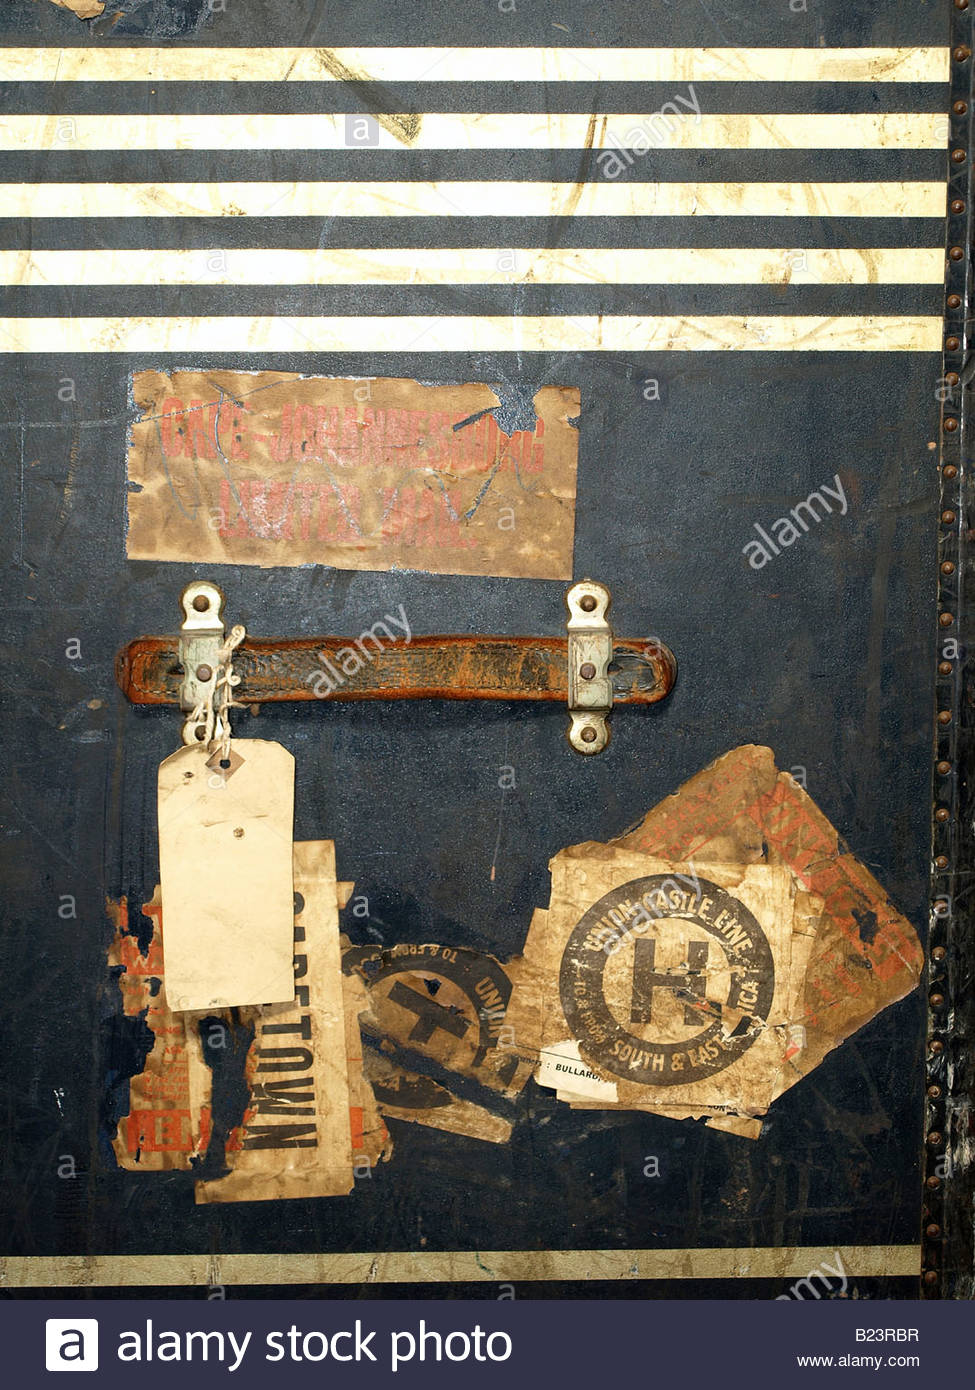 Vintage Travel Case Stickers and Labels which are very useful for many design purposes - Stock Image